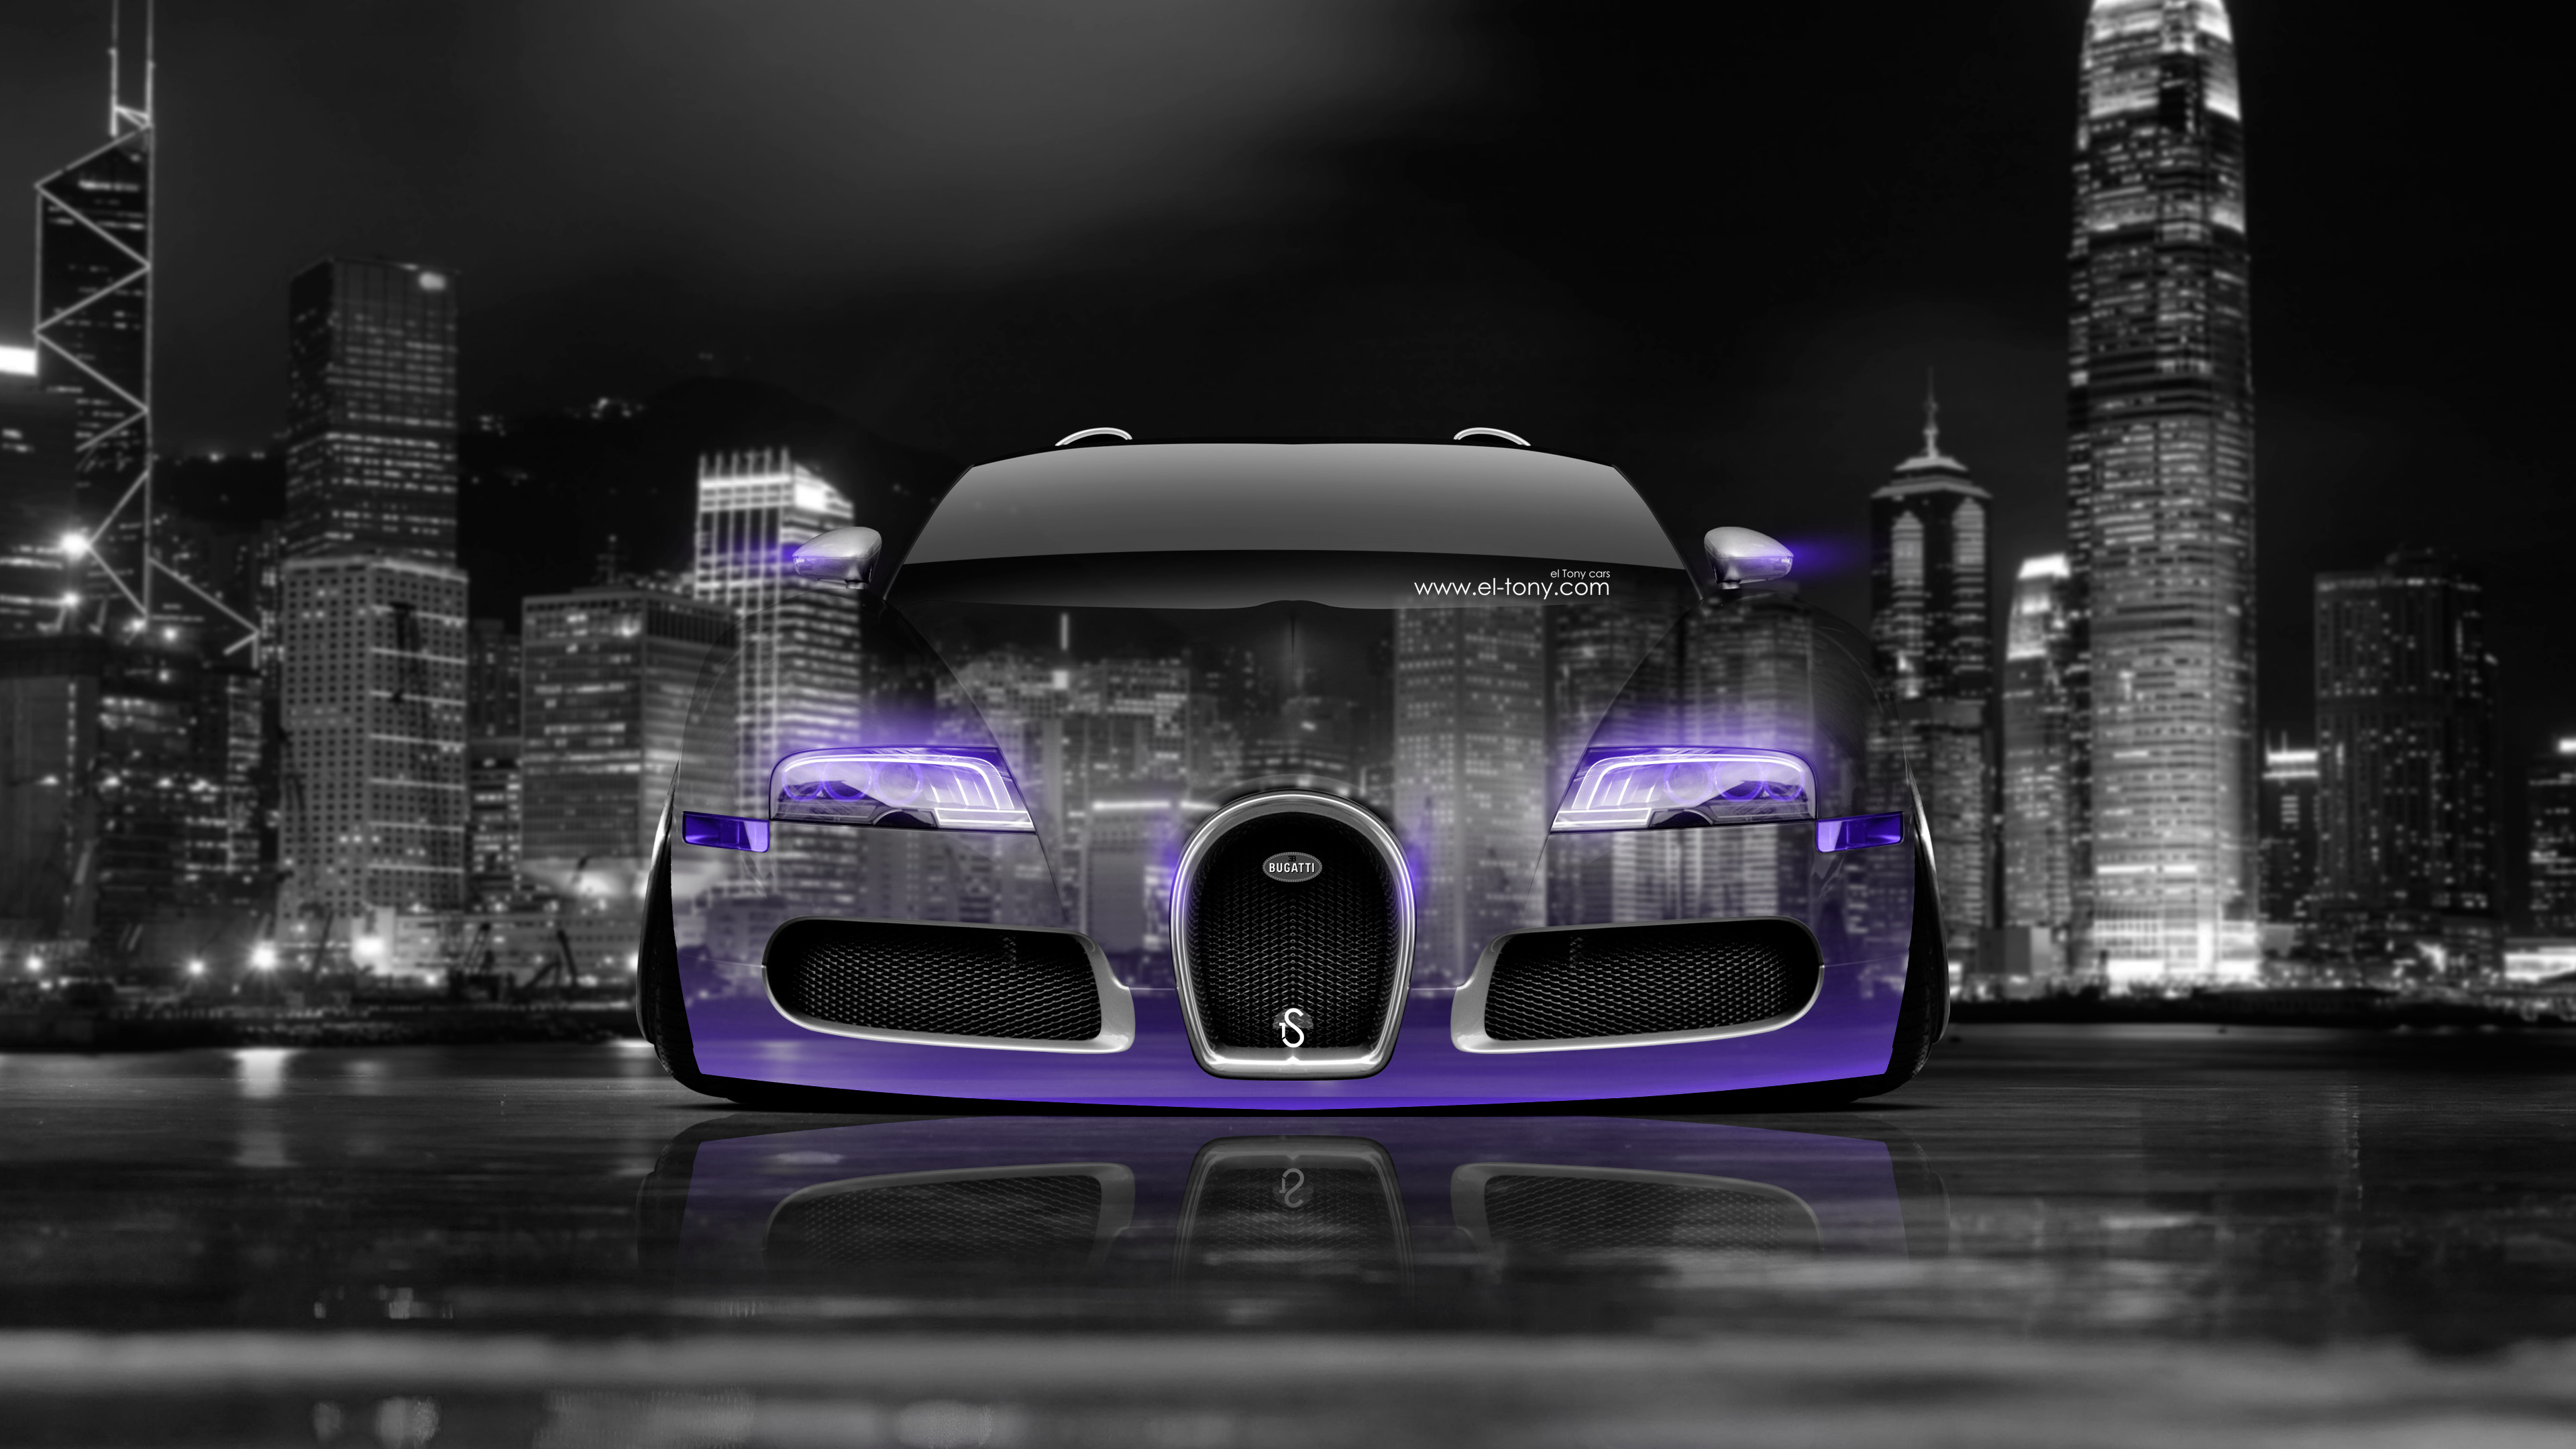 Merveilleux Bugatti Veyron Back Fire Crystal City Car 2014 · 4K Wallpapers Bugatti  Veyron Front Crystal City Car 2014